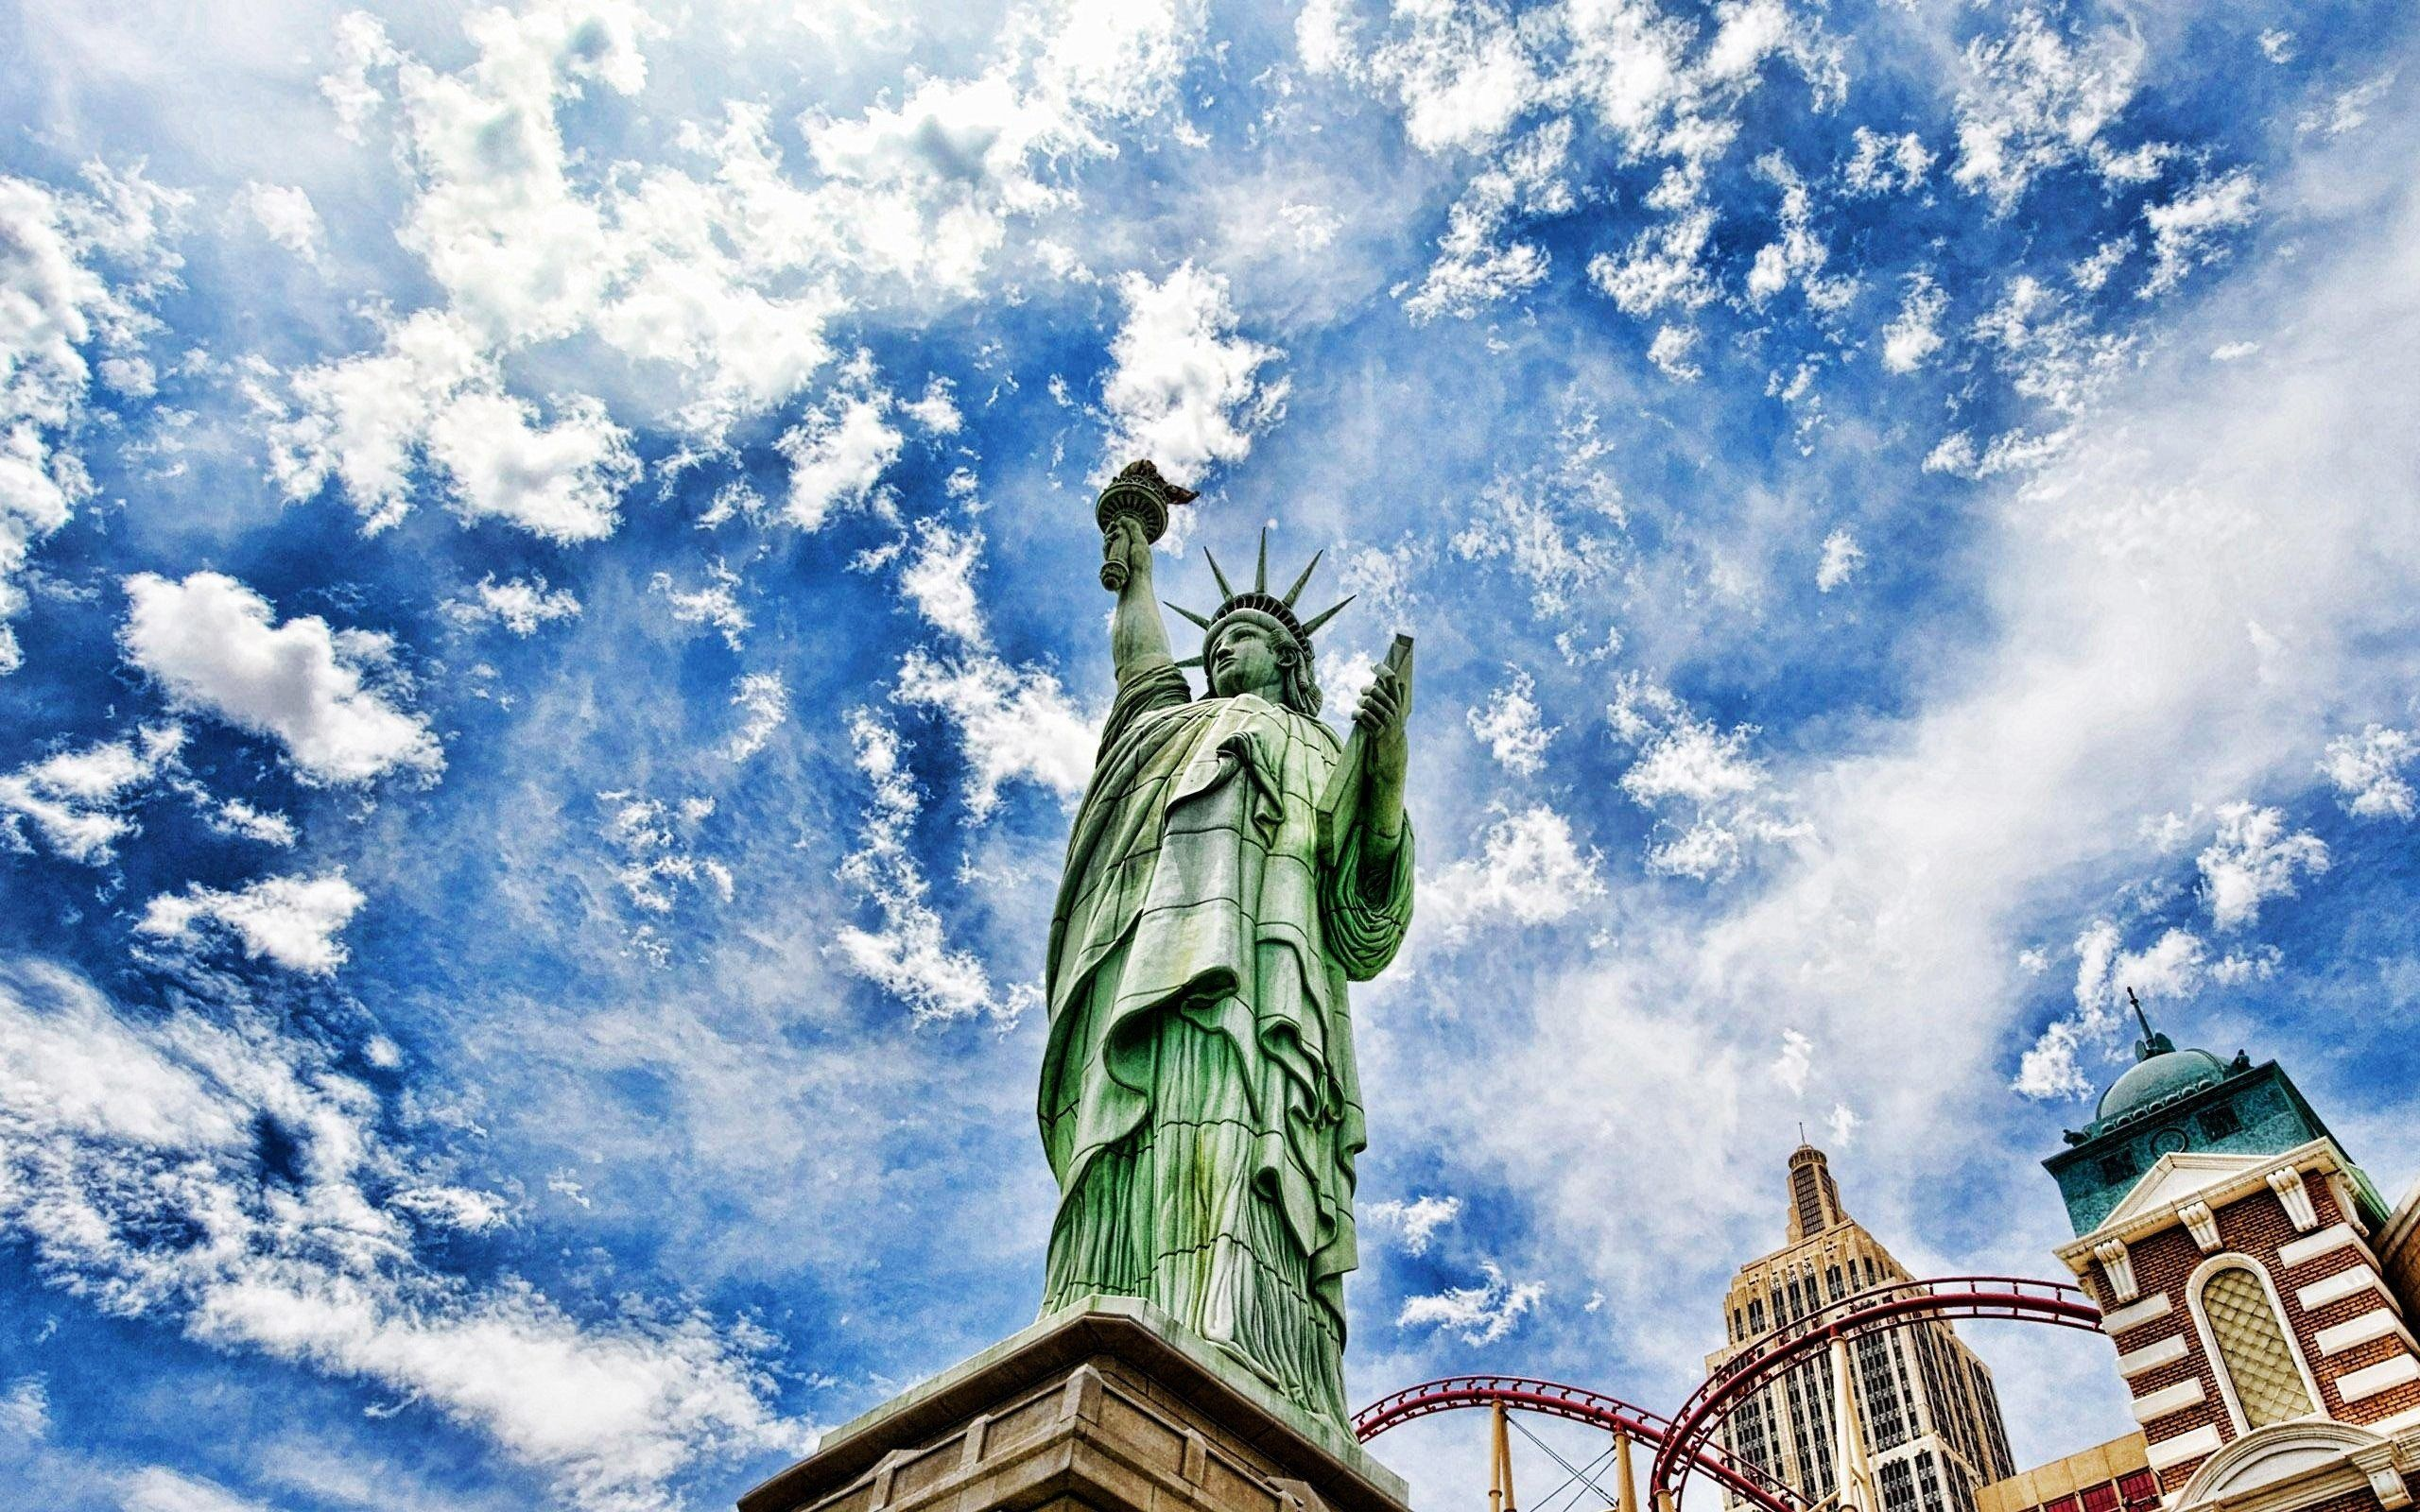 Statue Of Liberty Hd 1366x768 Hd Wallpaper From Gallsource Com Pc